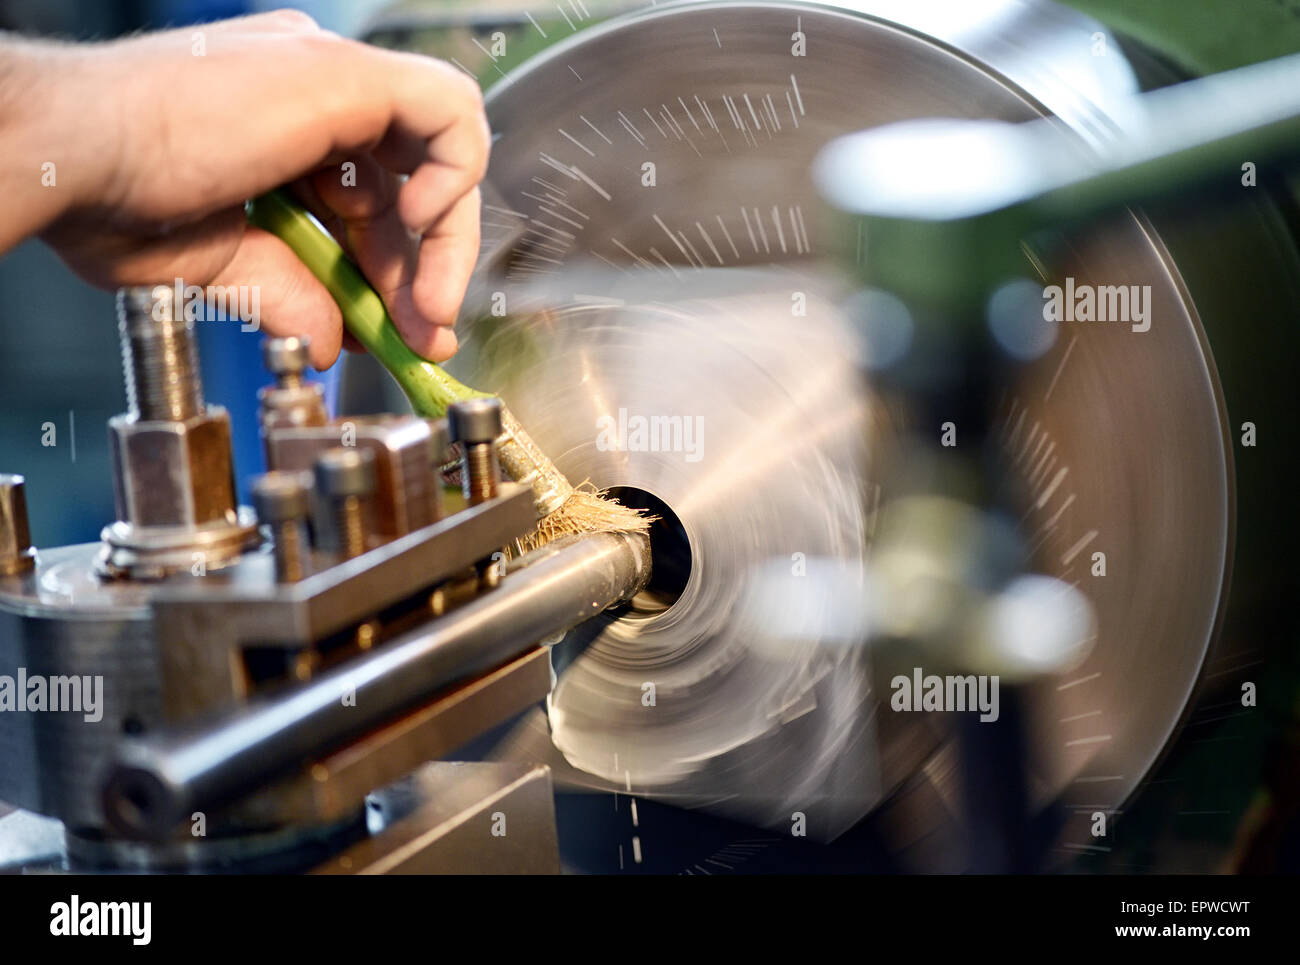 Man placing lubricating oil on a lathe in an engineering or industrial workshop - Stock Image